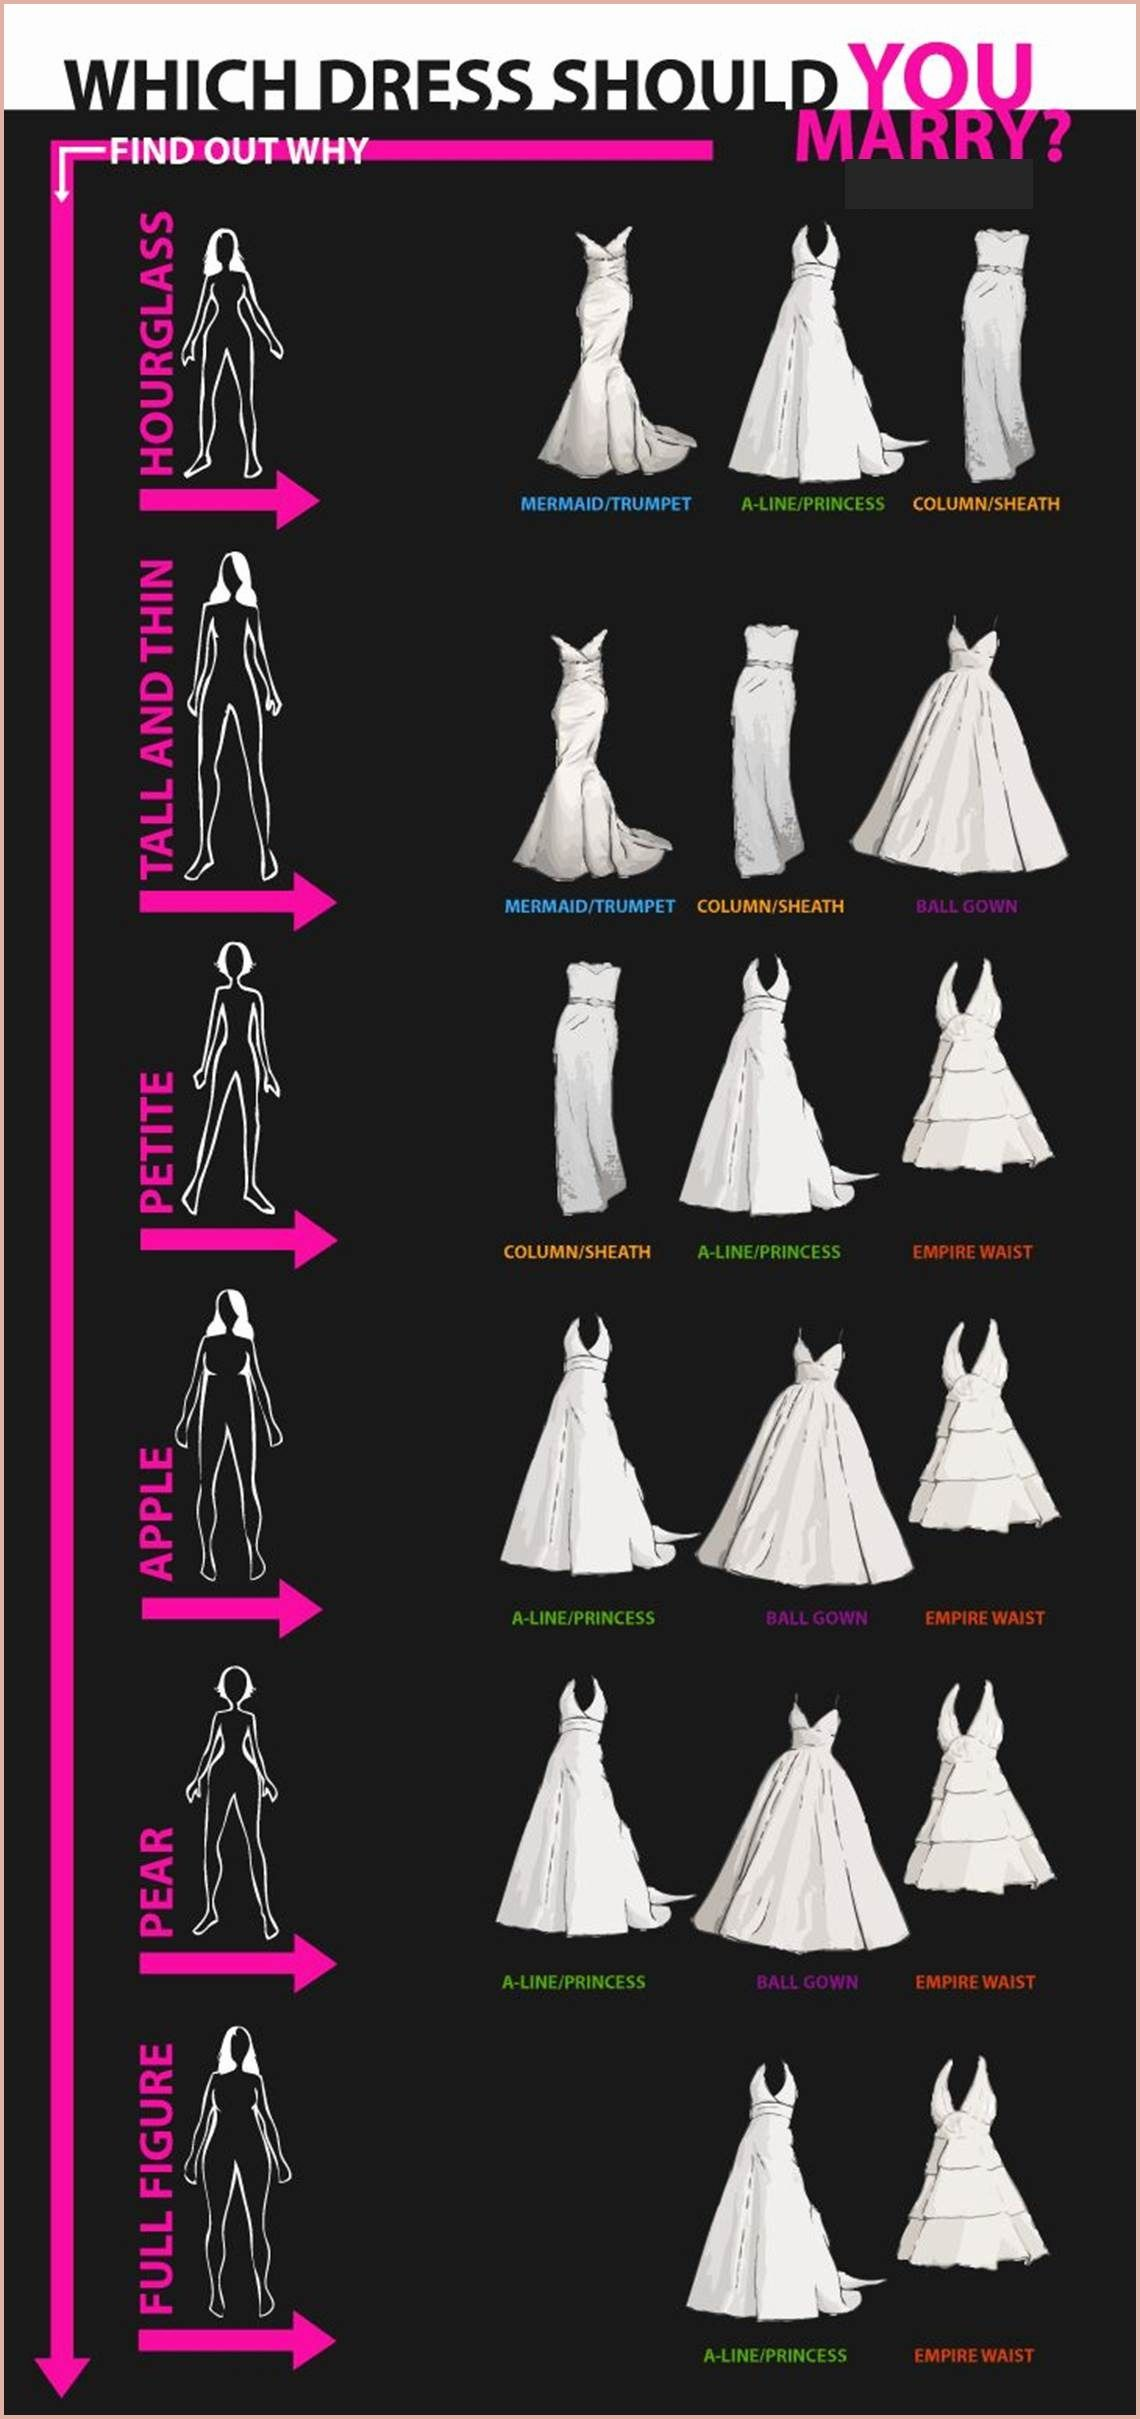 13 Magnificent Wedding Dress For My Body Type 2020 Bridal Gown Styles Draped Wedding Dress Wedding